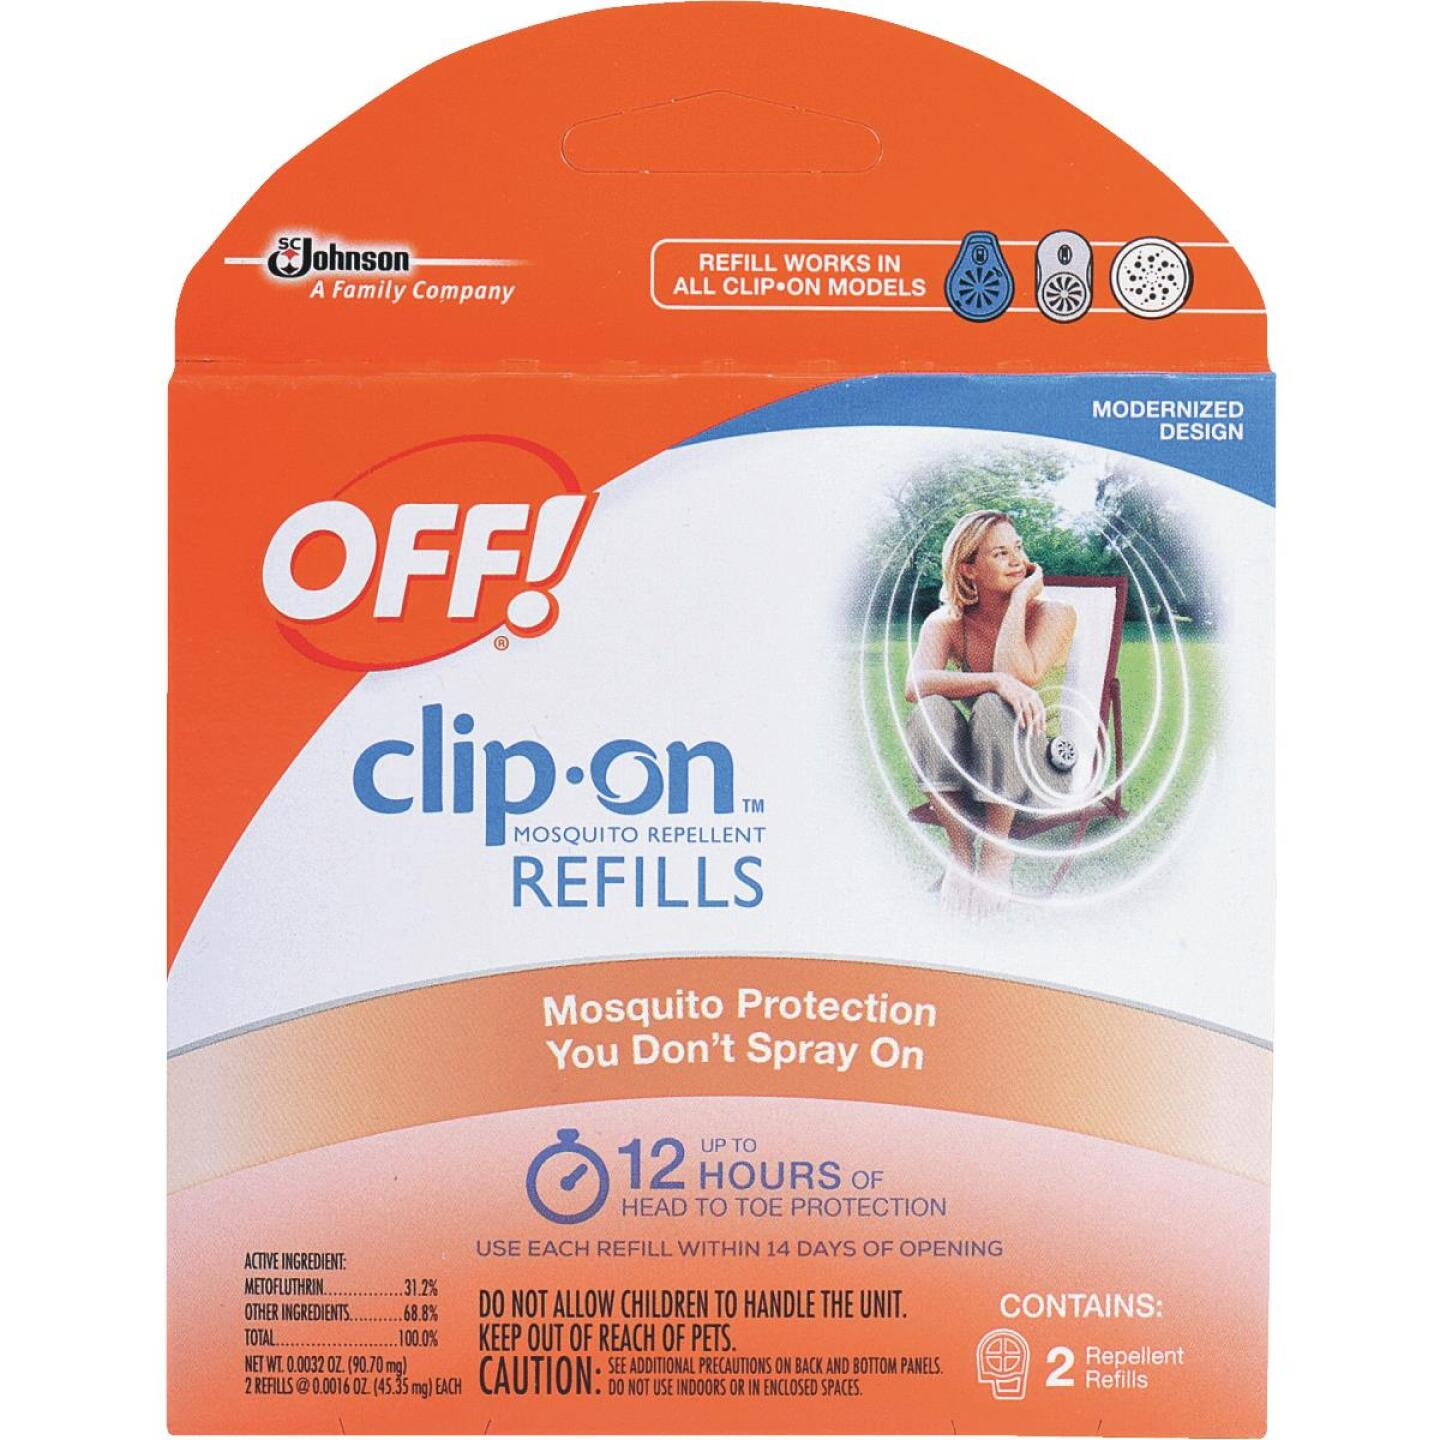 OFF! 12 Hr. Clip-On Mosquito Repellent Refill (2-Pack) Image 1